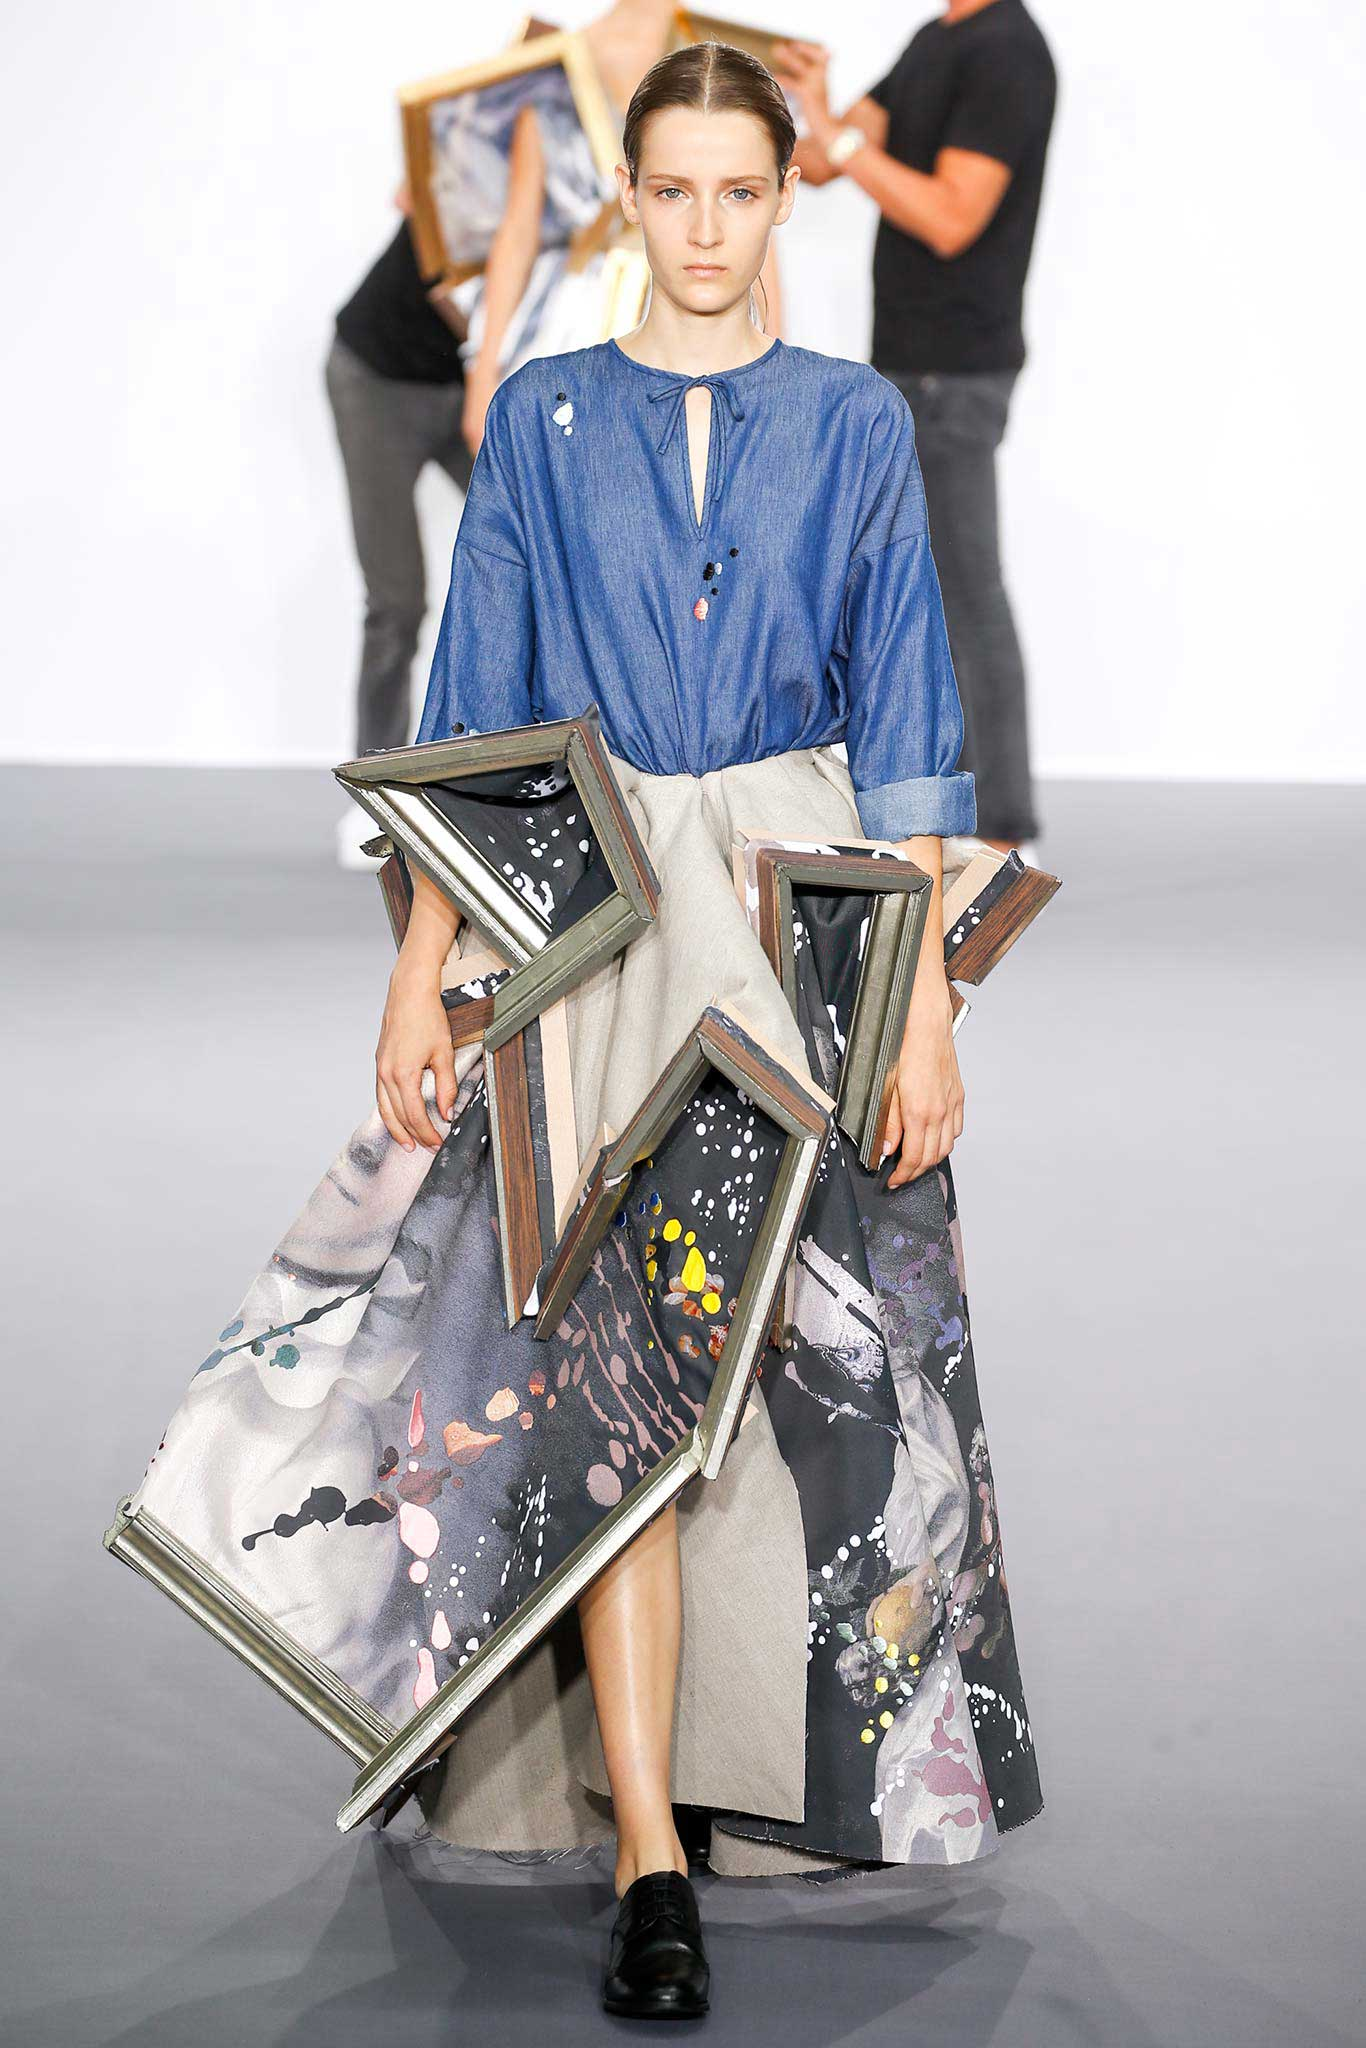 Viktor & Rolf Dress Models in Wearable Paintings   Yellowtrace